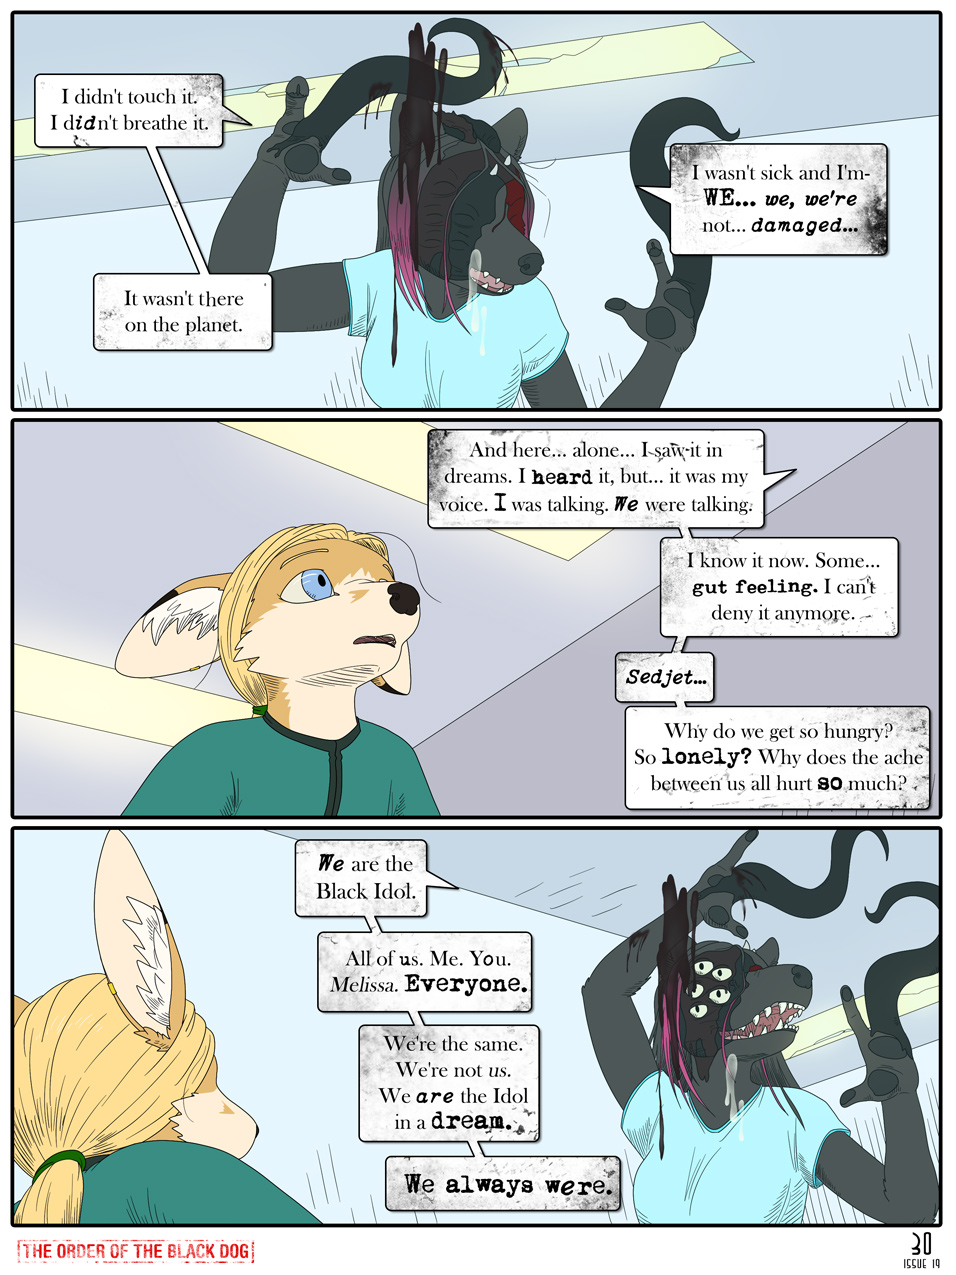 Issue 19, Page 30